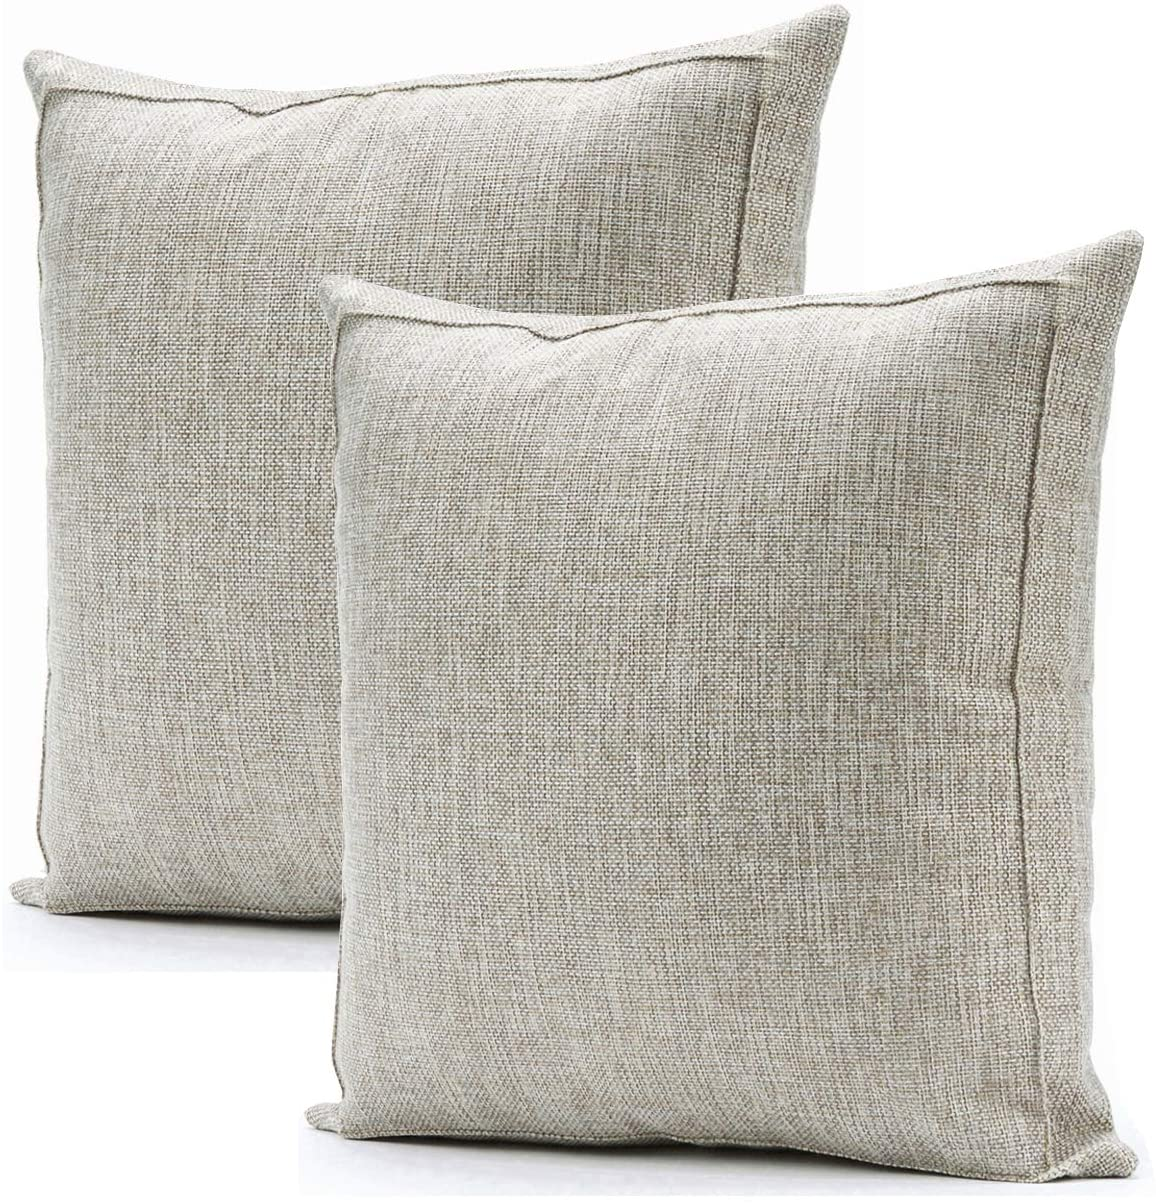 Jepeak Burlap Linen Throw Pillow Covers Cushion Cases, Pack of 2